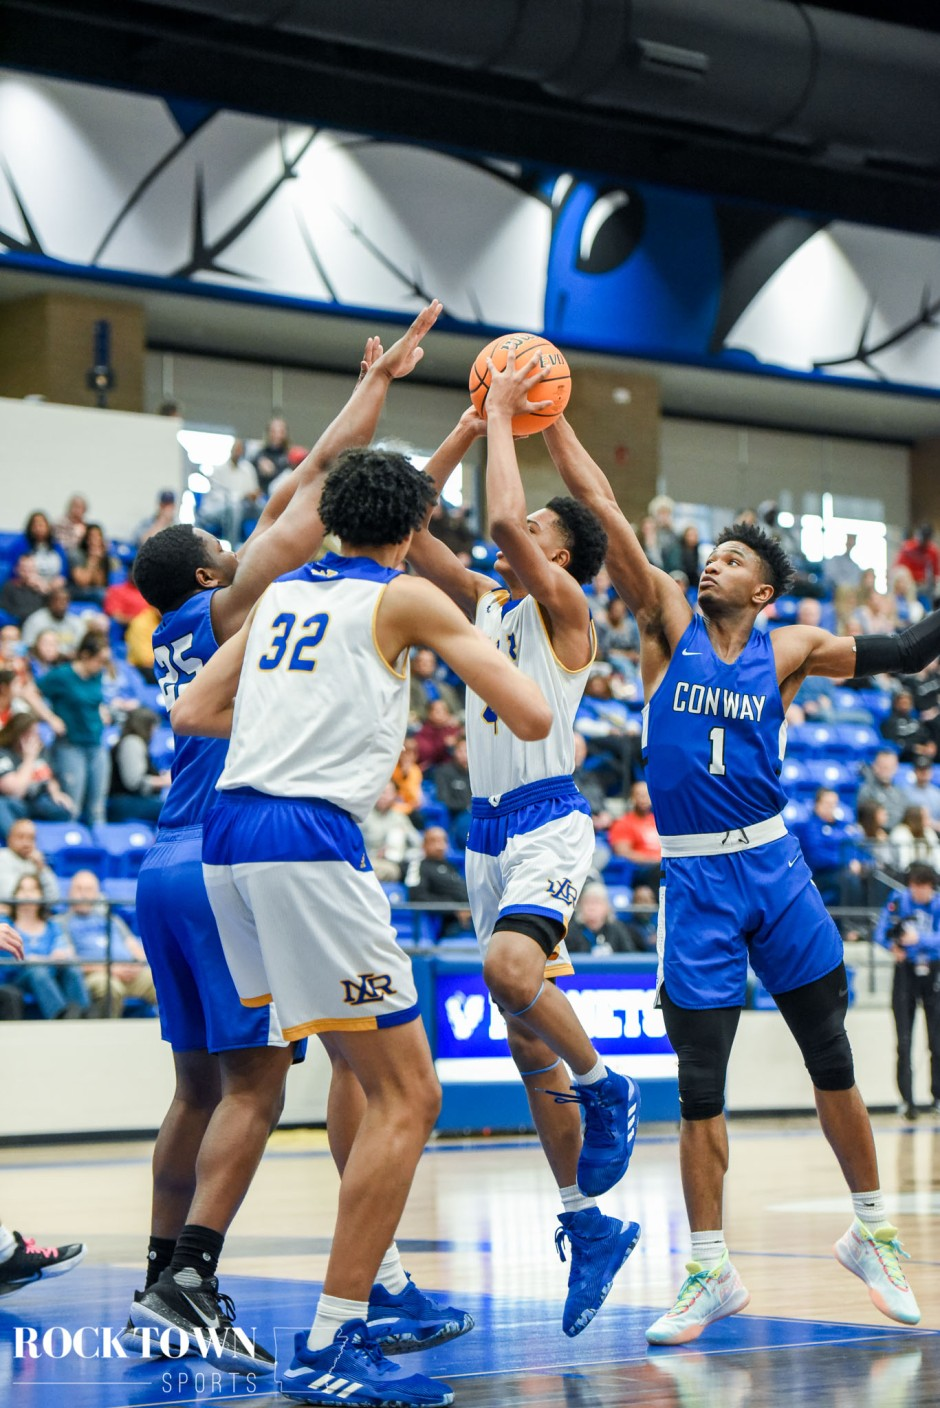 NLR_conway_bball_2020(i)-31